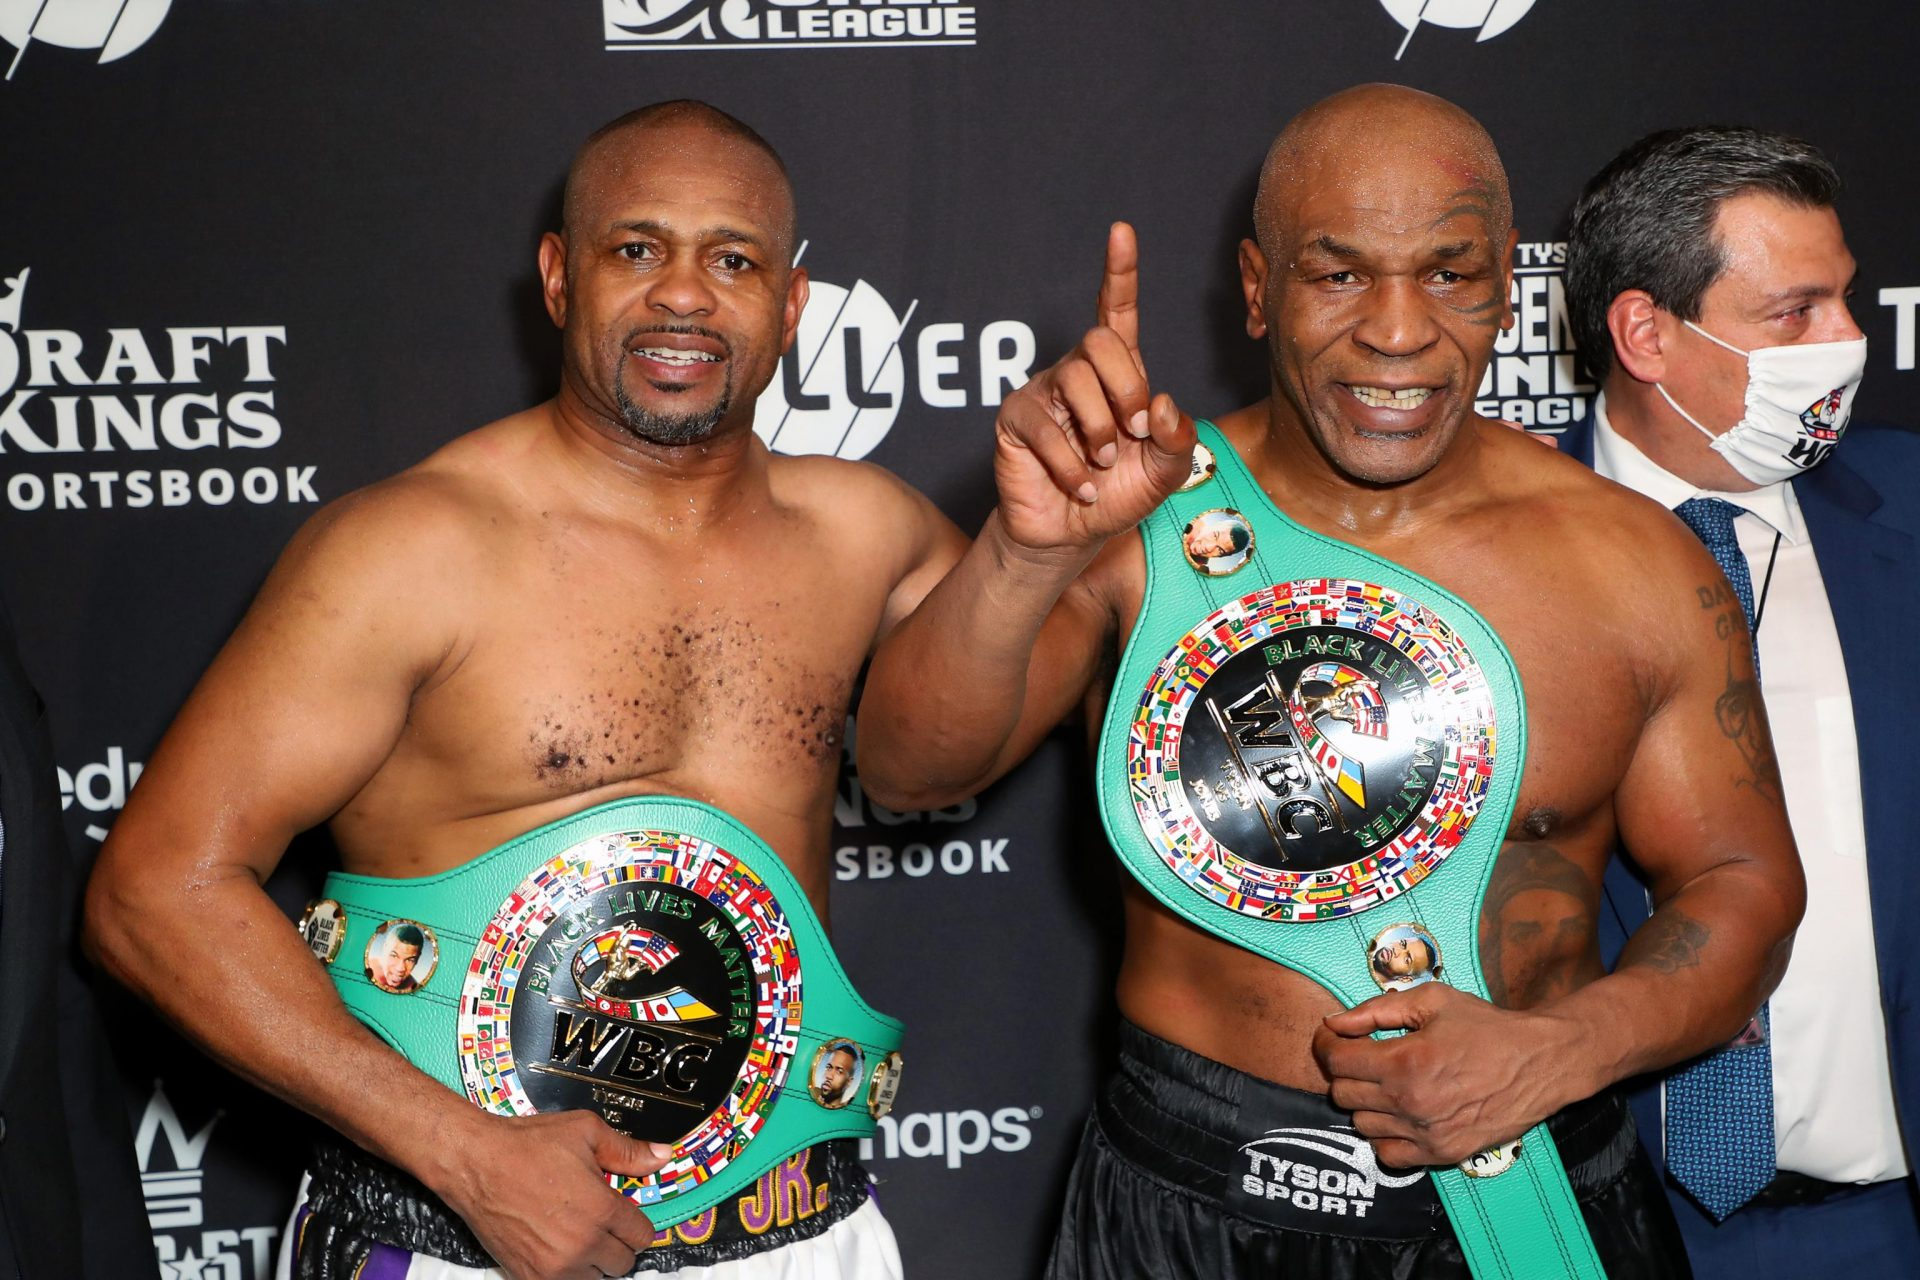 Mike Tyson vs Roy Jones Jr sold 1.2 Million PPV buys - Mike Tyson